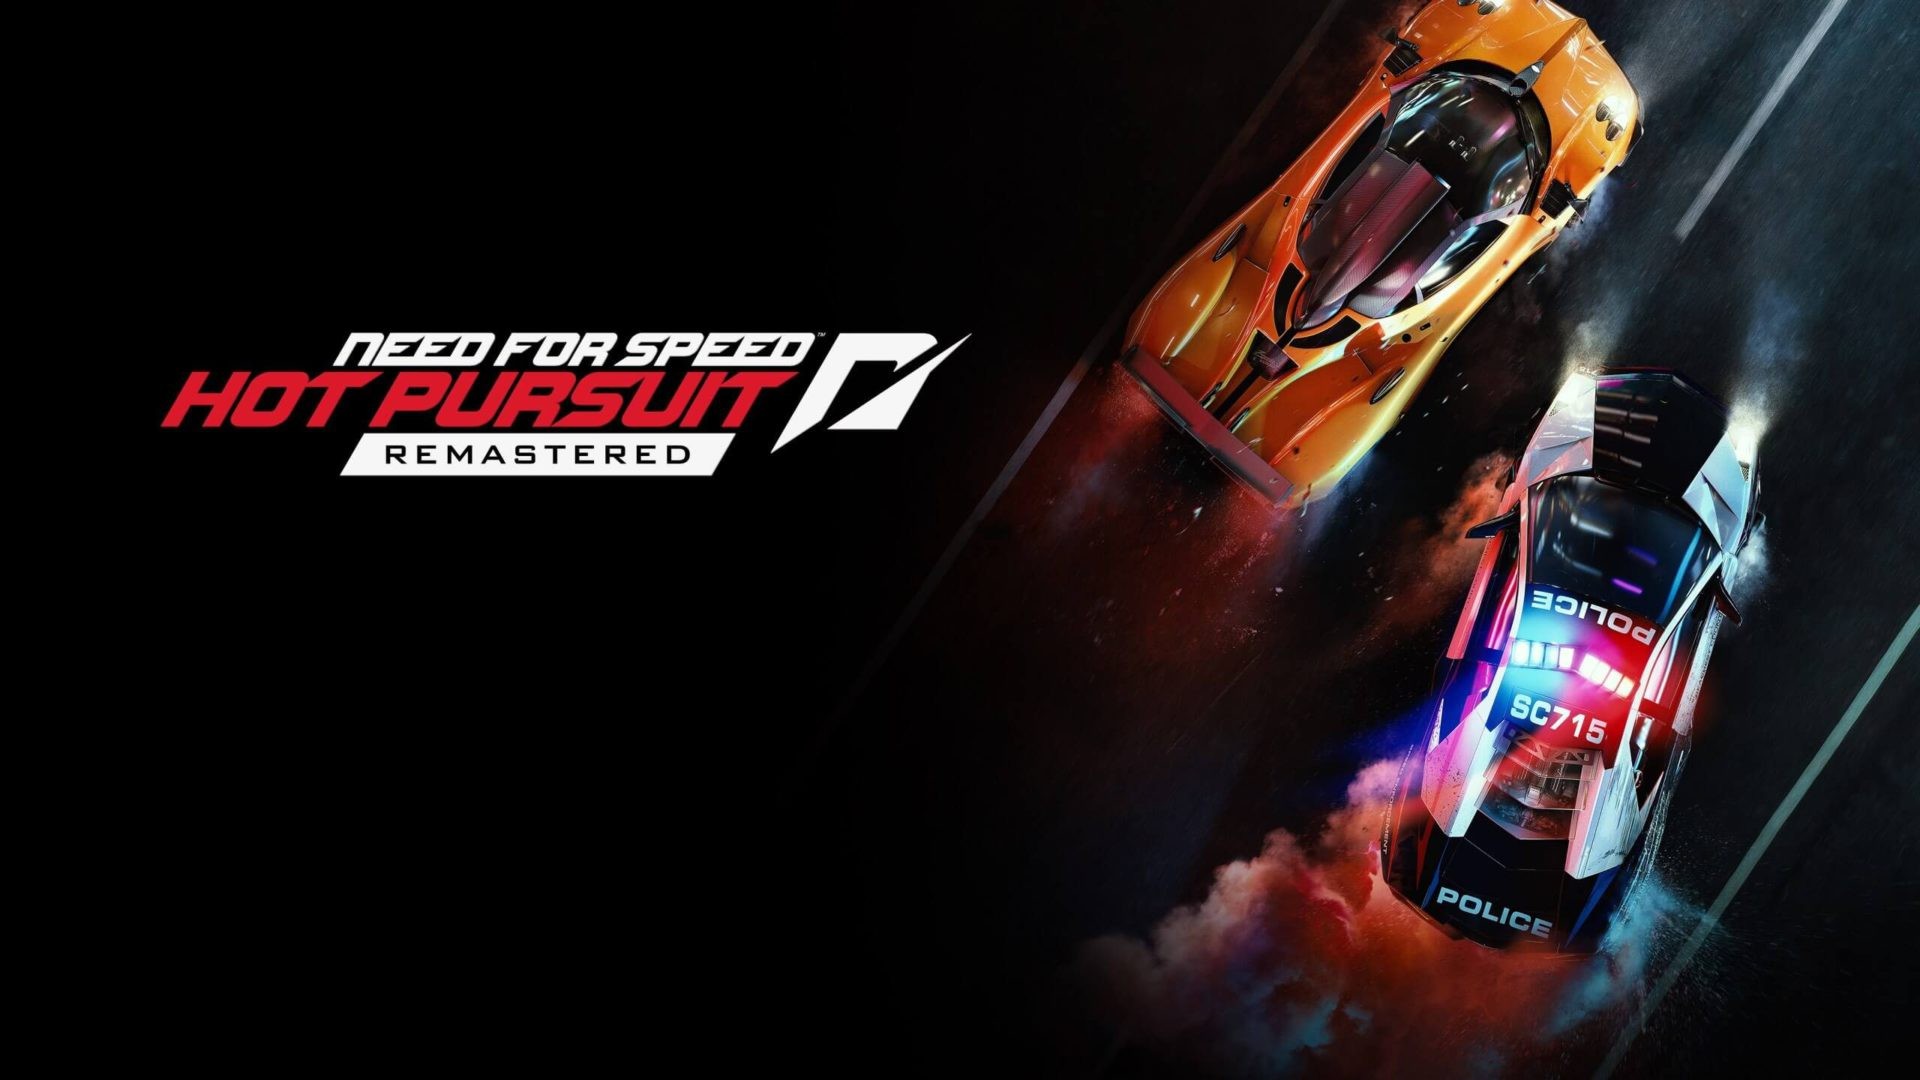 Need for Speed Hot Pursuit Remastered 4 - سی دی کی اورجینال Need For Speed: Hot Pursuit Remastered